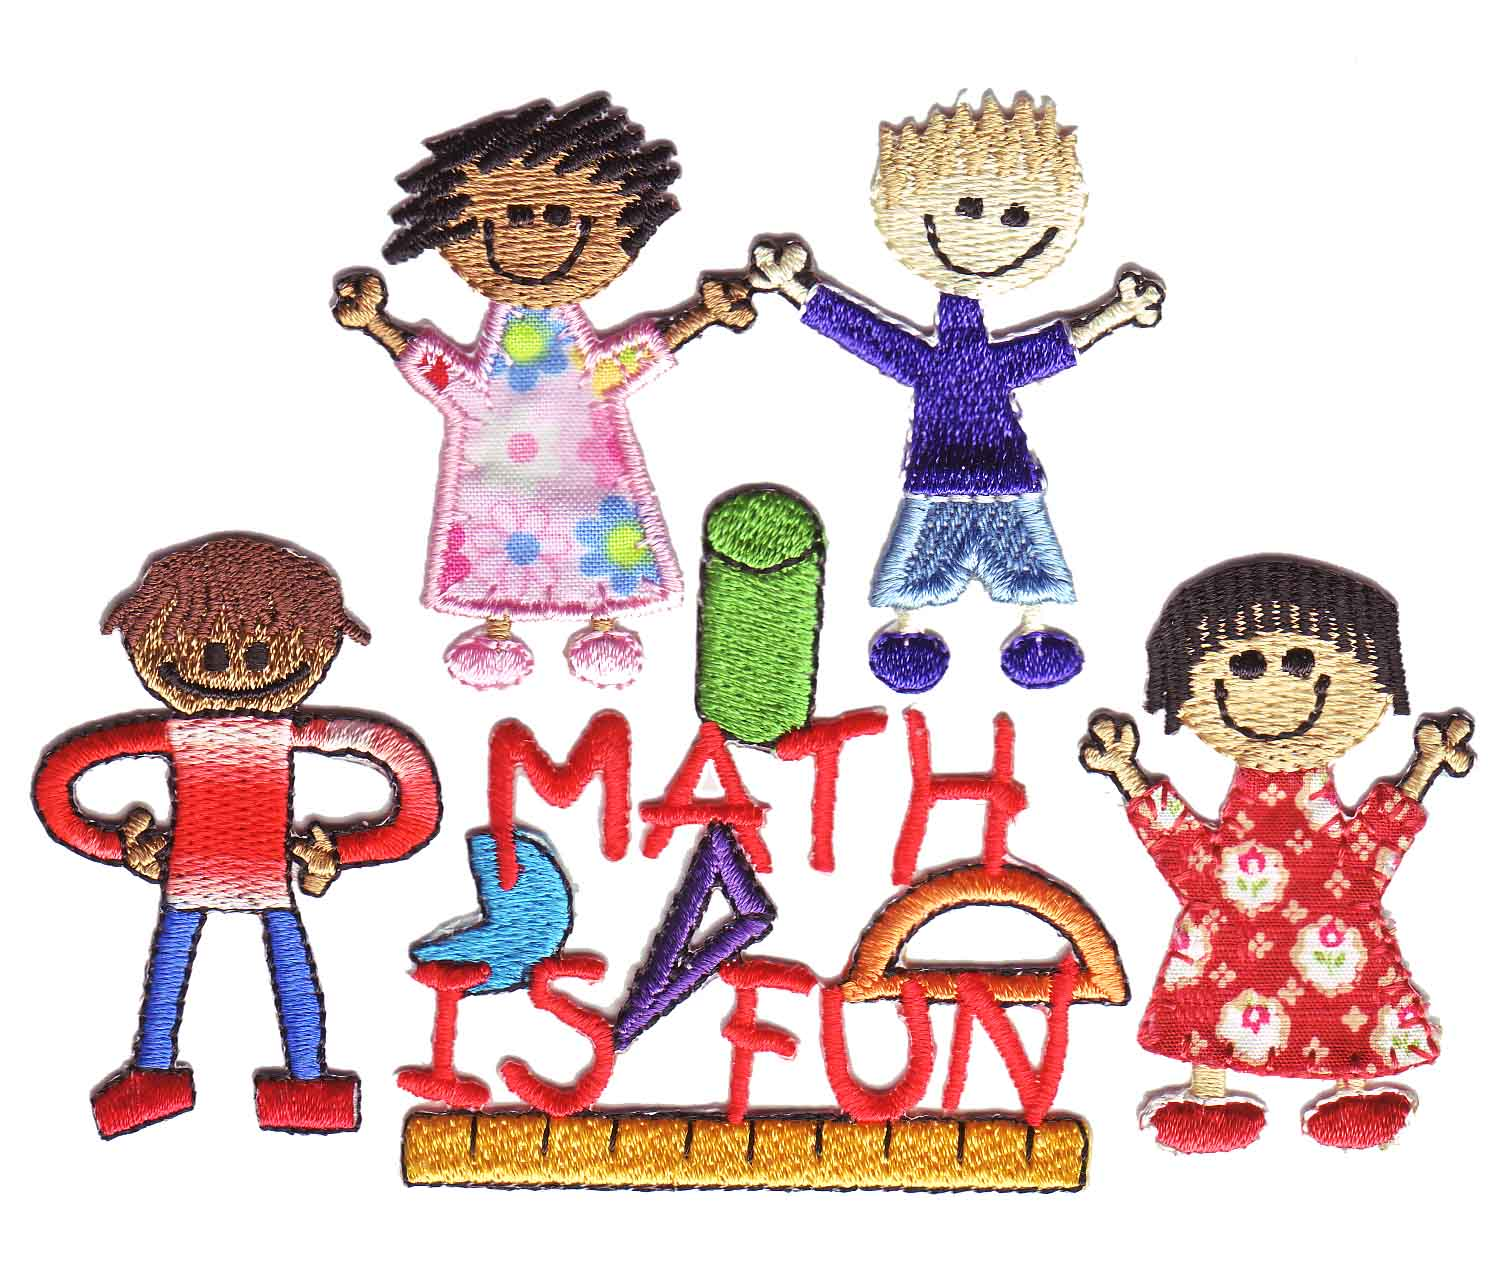 Best Education Possible: How To Motivate Our Children In Mathematics